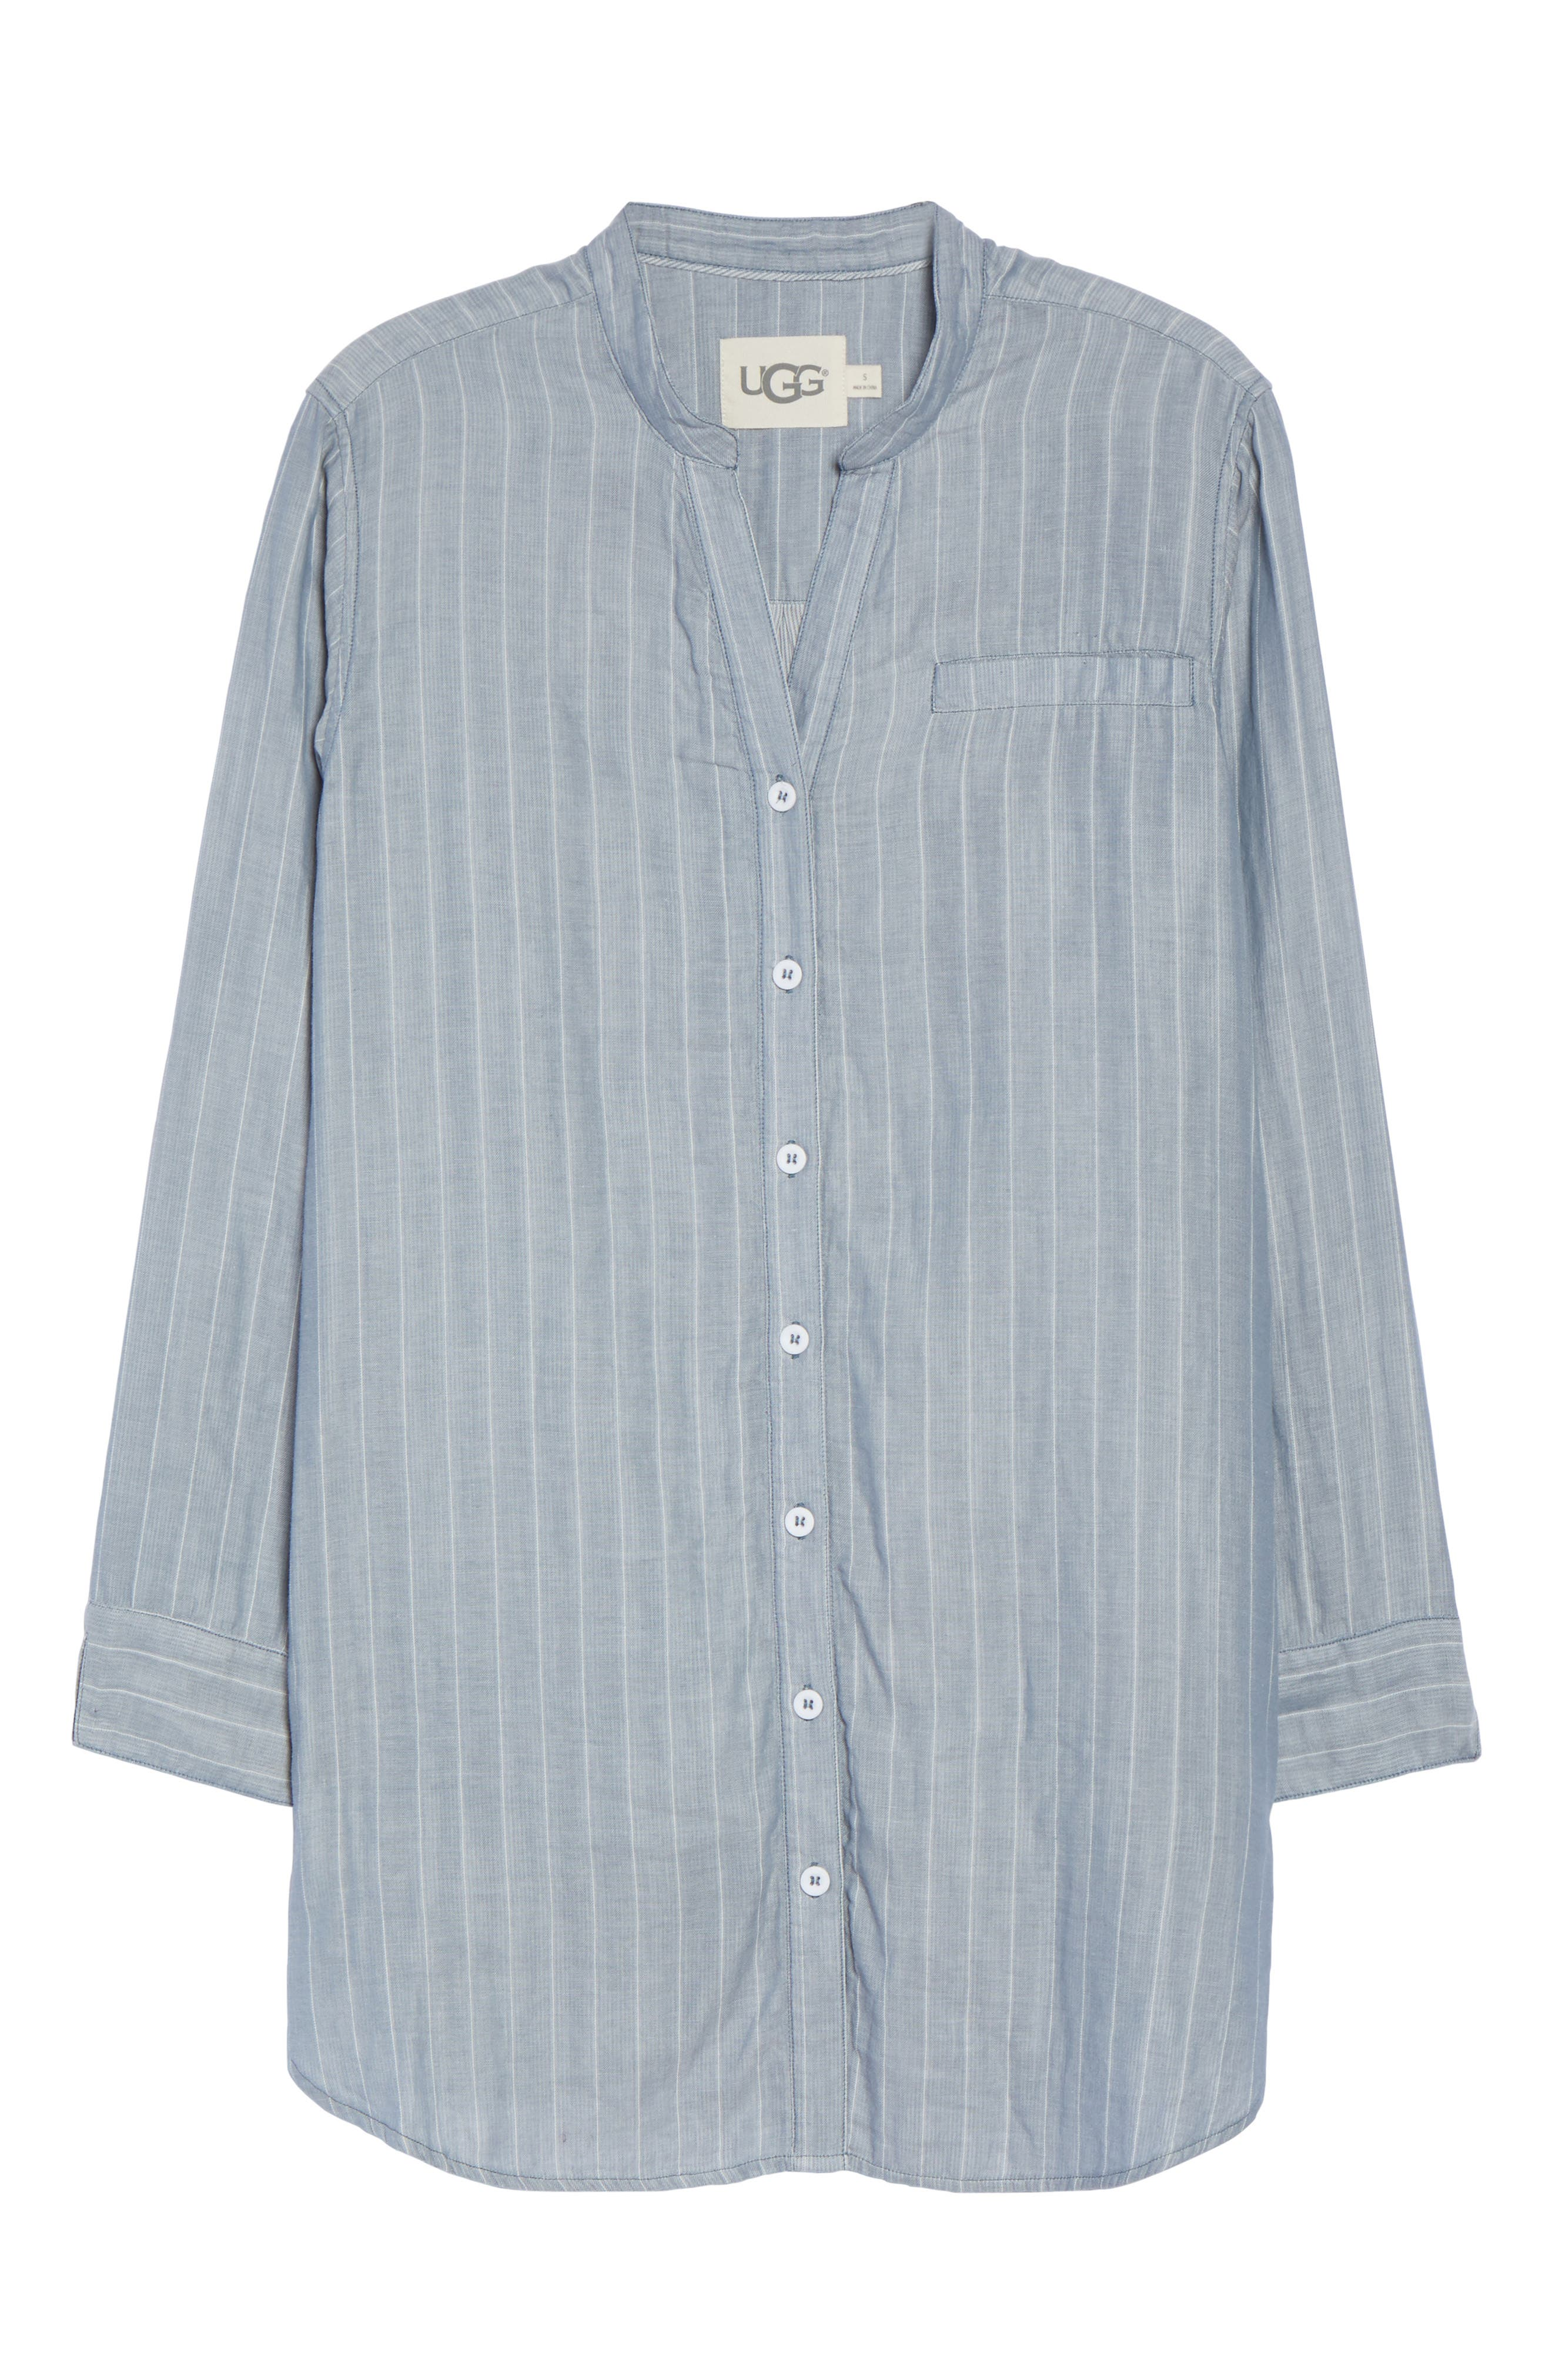 UGG Vivian Stripe Sleep Shirt,                             Alternate thumbnail 6, color,                             400